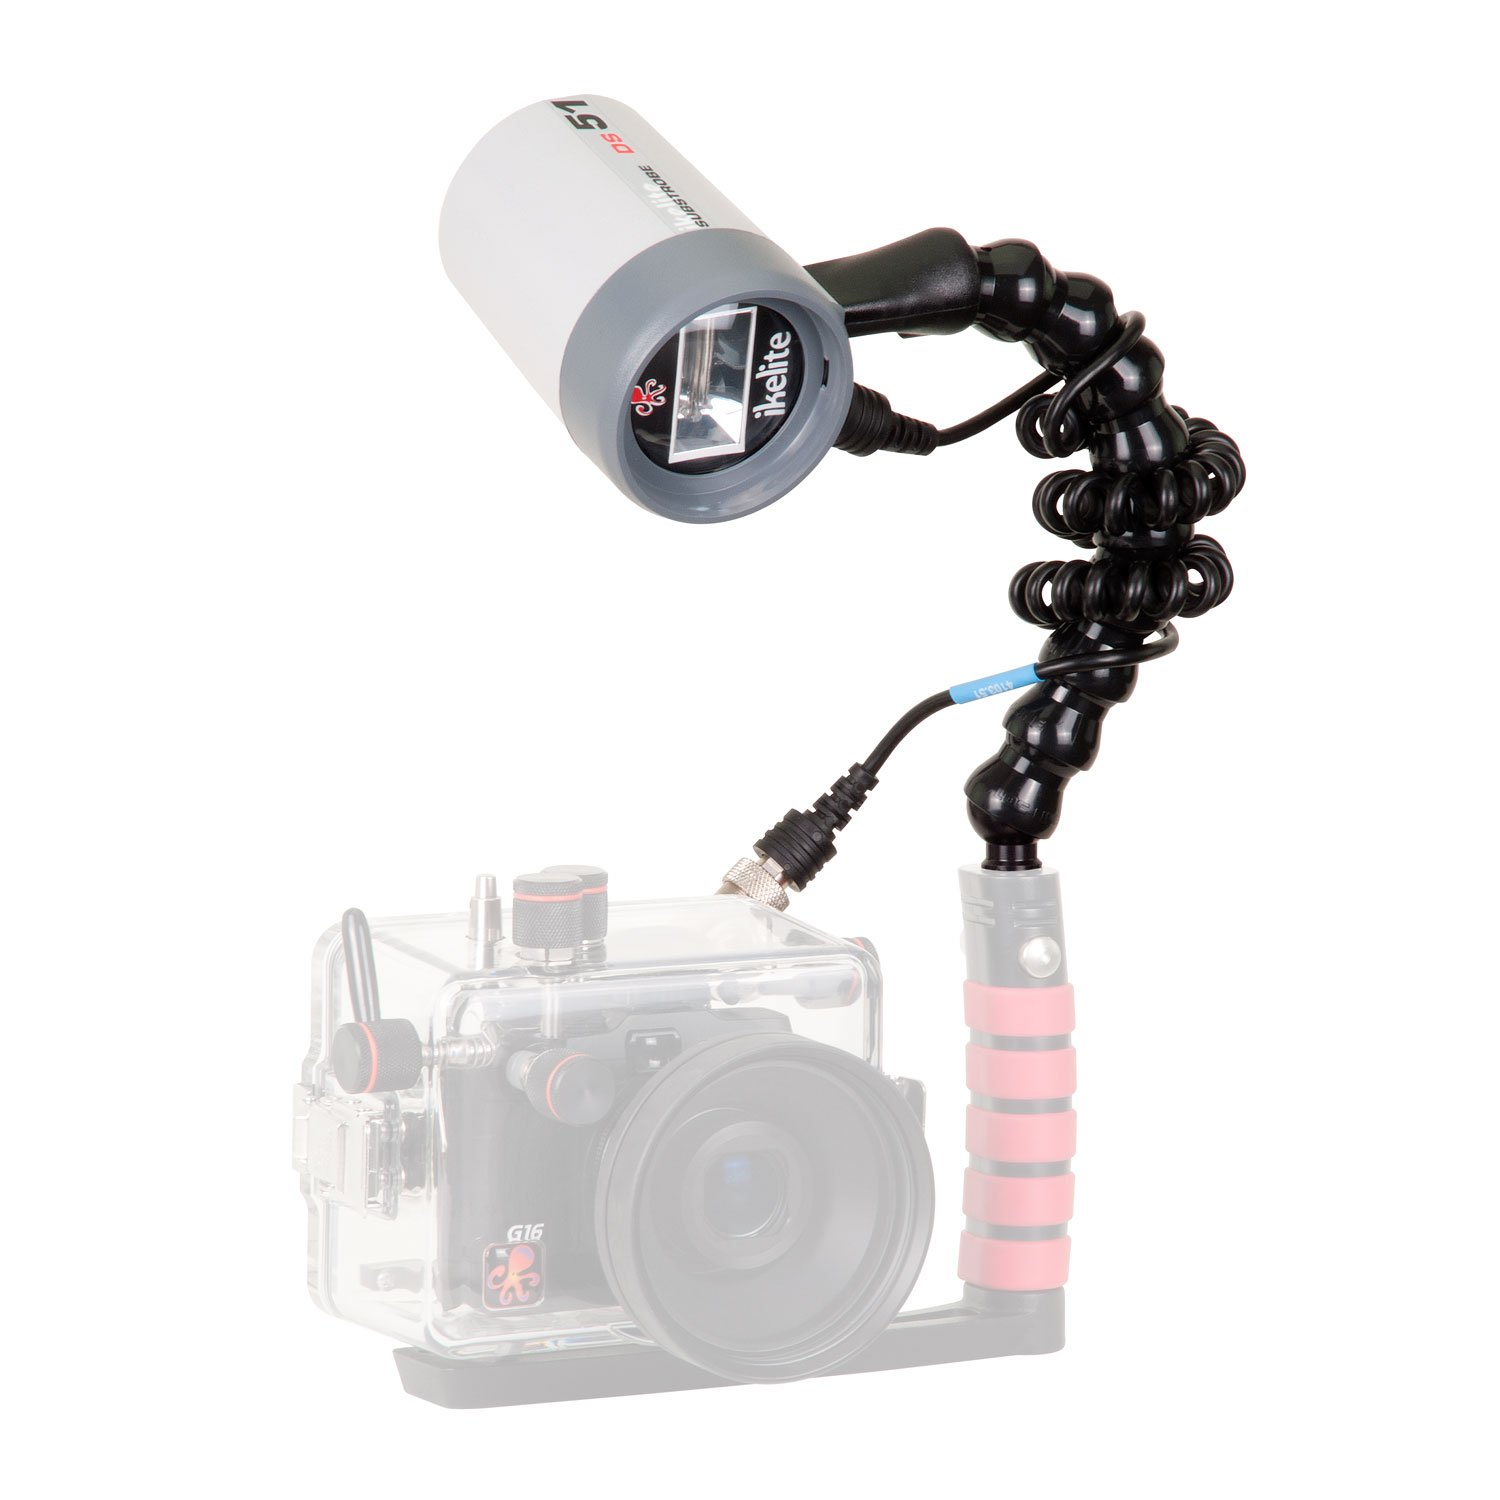 Ikelite 4044.4 DS51 Strobe Flash Package with Flex Arm and TTL Sync Cord (Clear) by Ikelite